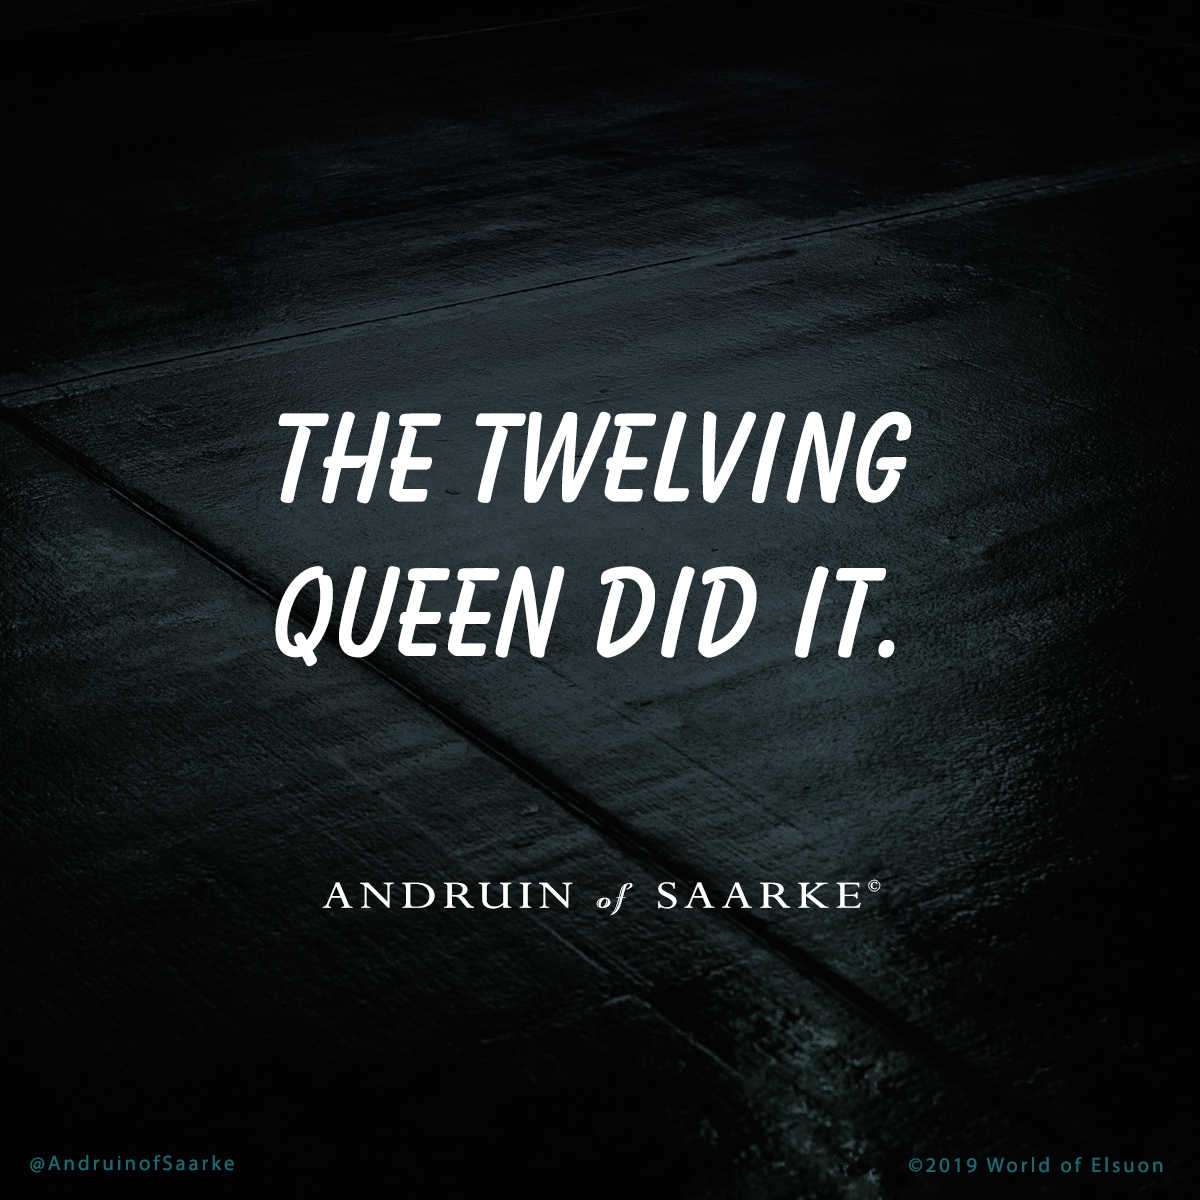 Andruin 09 - the twelving queen did it